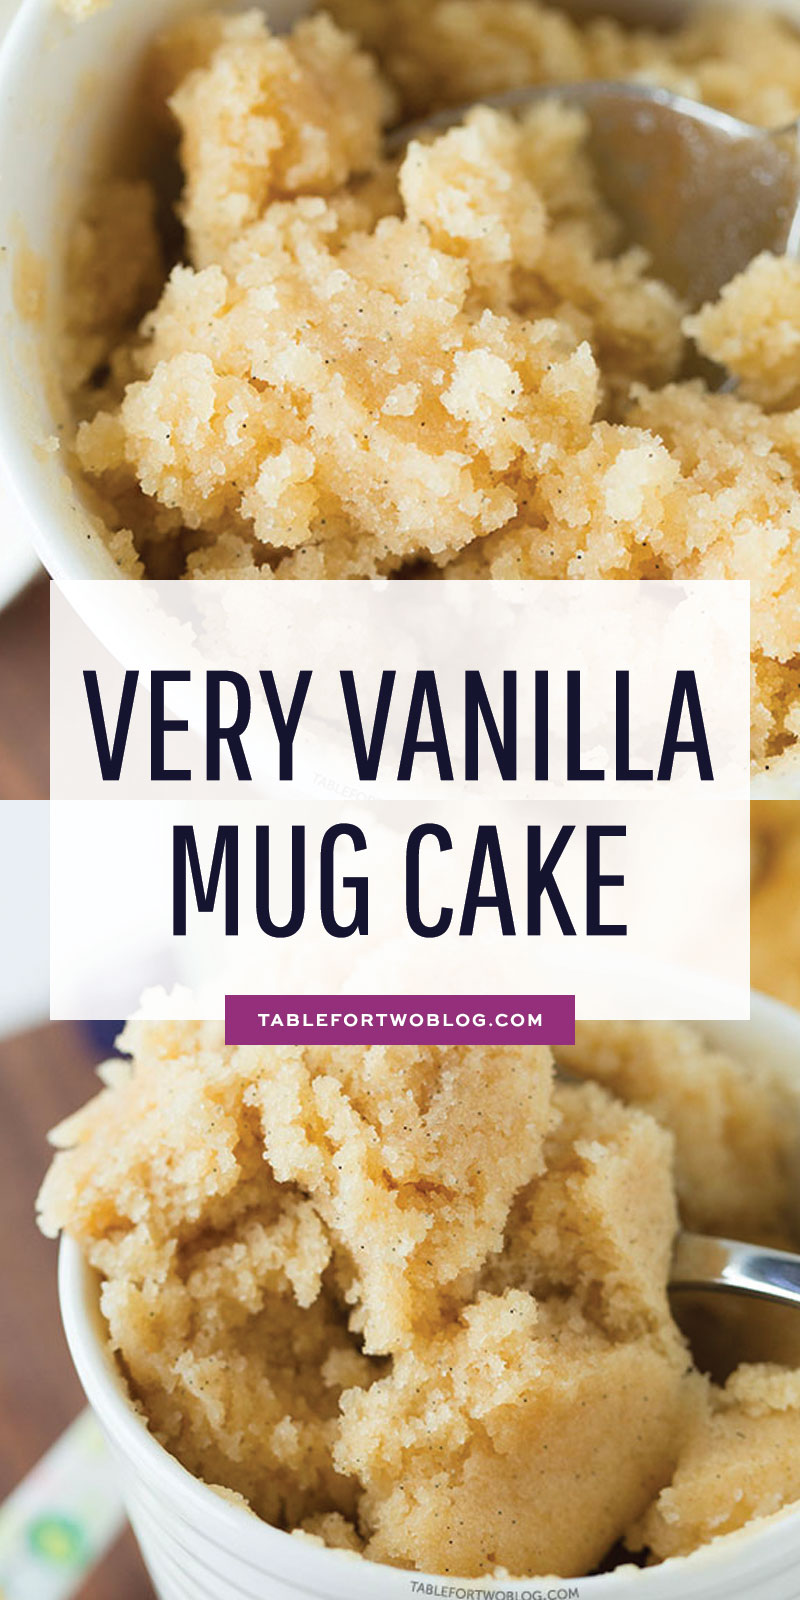 The moistest very vanilla mug cake is like a fluffy vanilla cupcake in a mug! Recipe on tablefortwoblog.com #mugcake #vanillamugcake #vanillacake #cakeinamug #vanilla